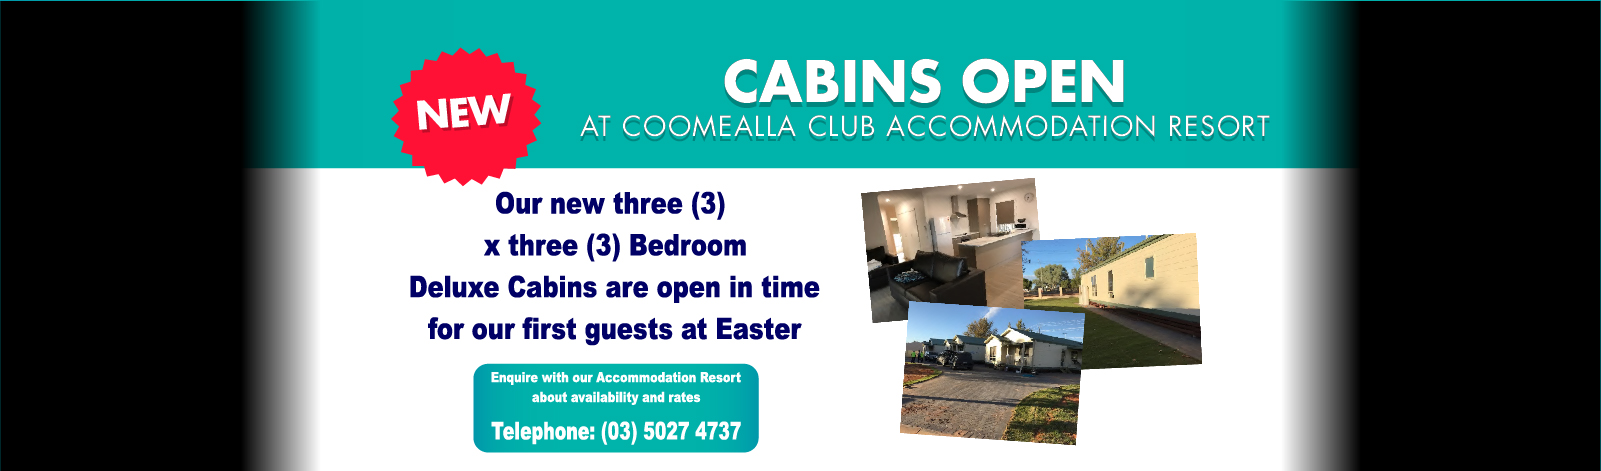 Cabins offer 1